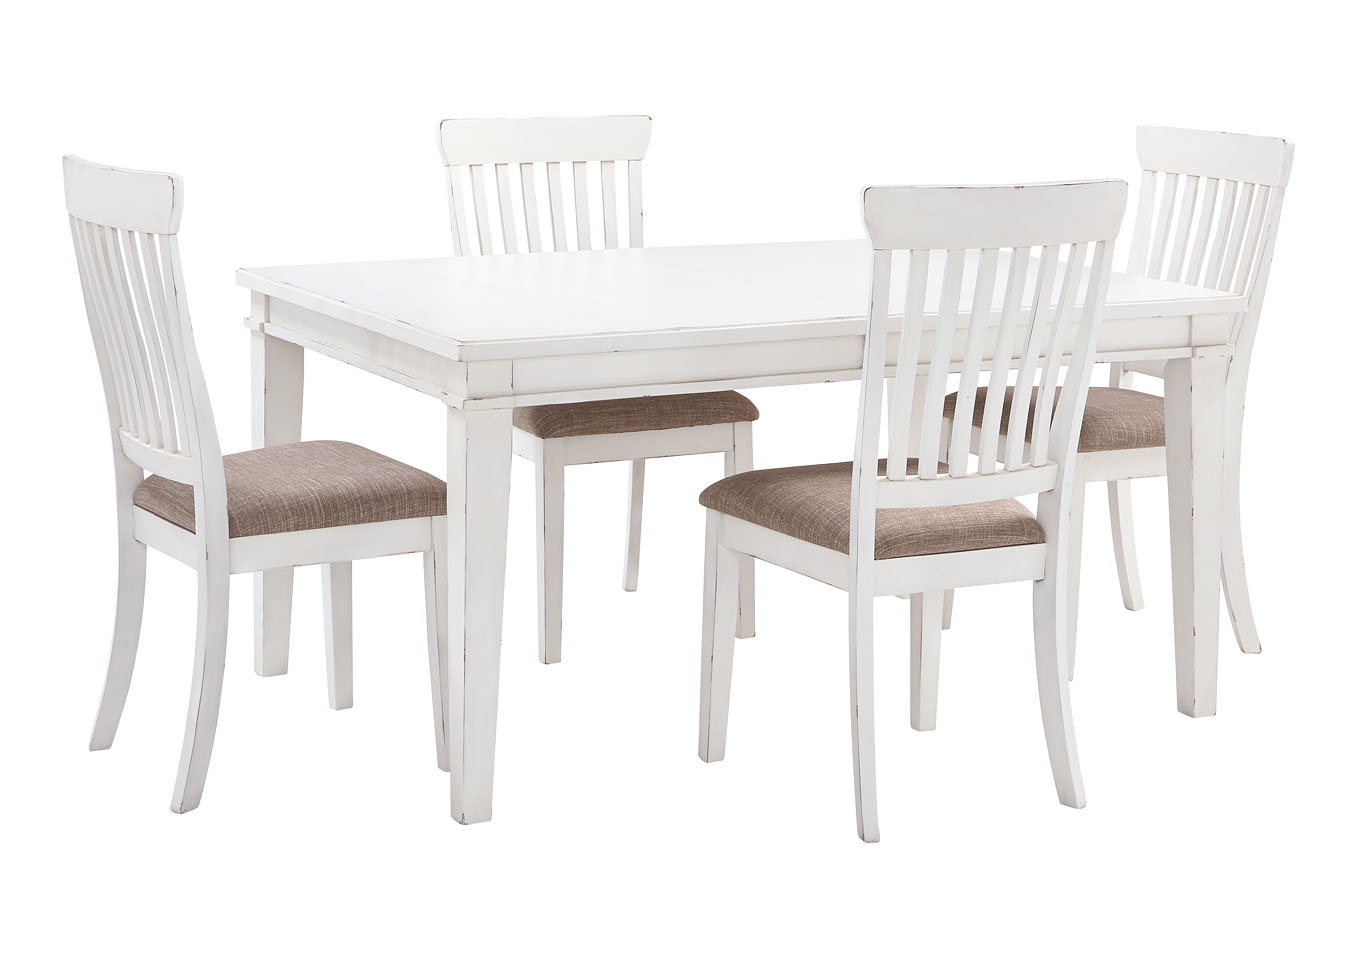 Danbeck White Dining Table Set w/Dining Table and 4 Side Chairs,Signature Design By Ashley